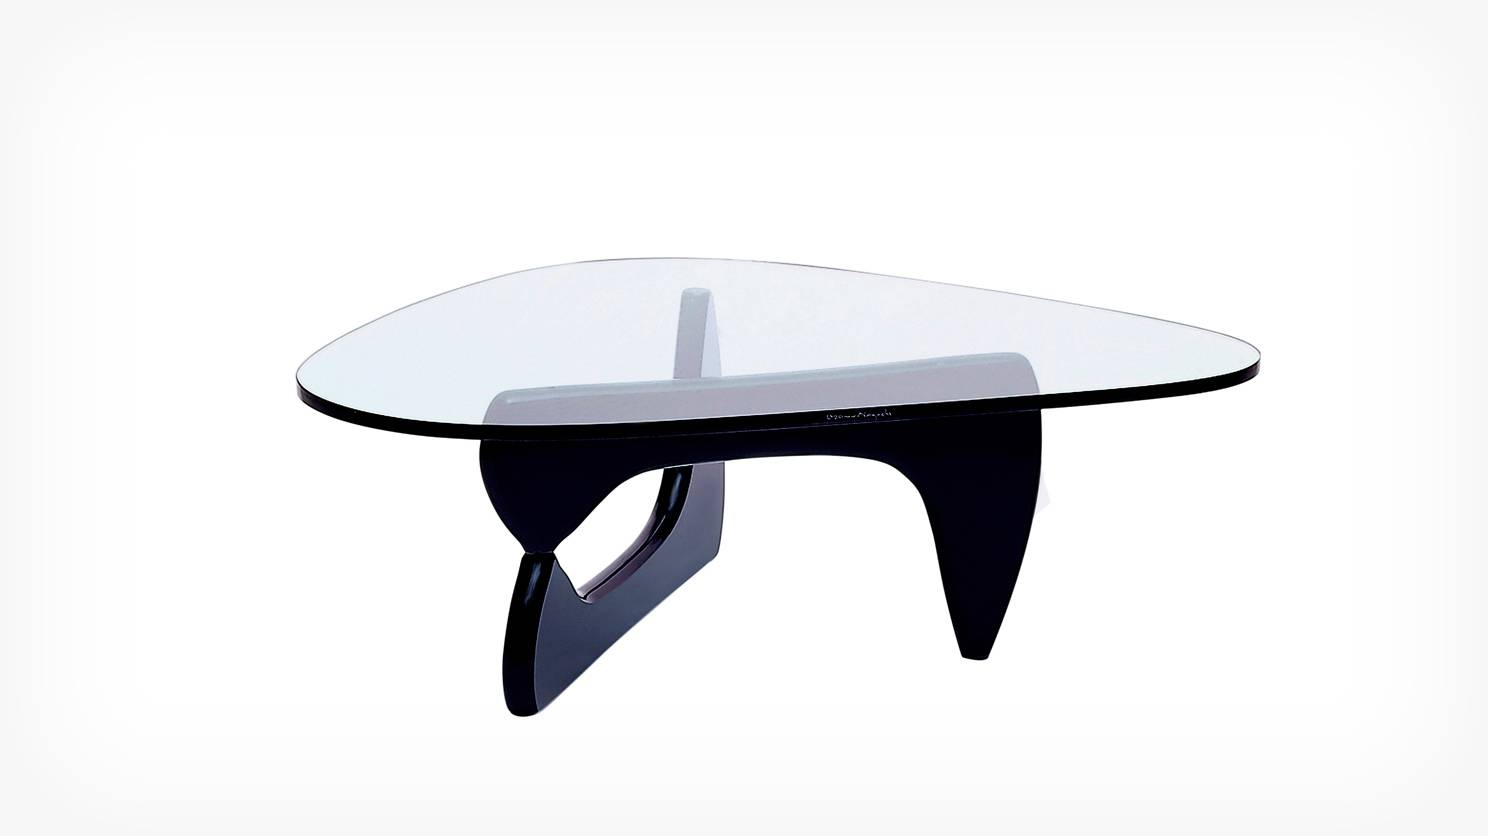 Eq3 | Noguchi® Coffee Table within Noguchi Coffee Tables (Image 5 of 30)